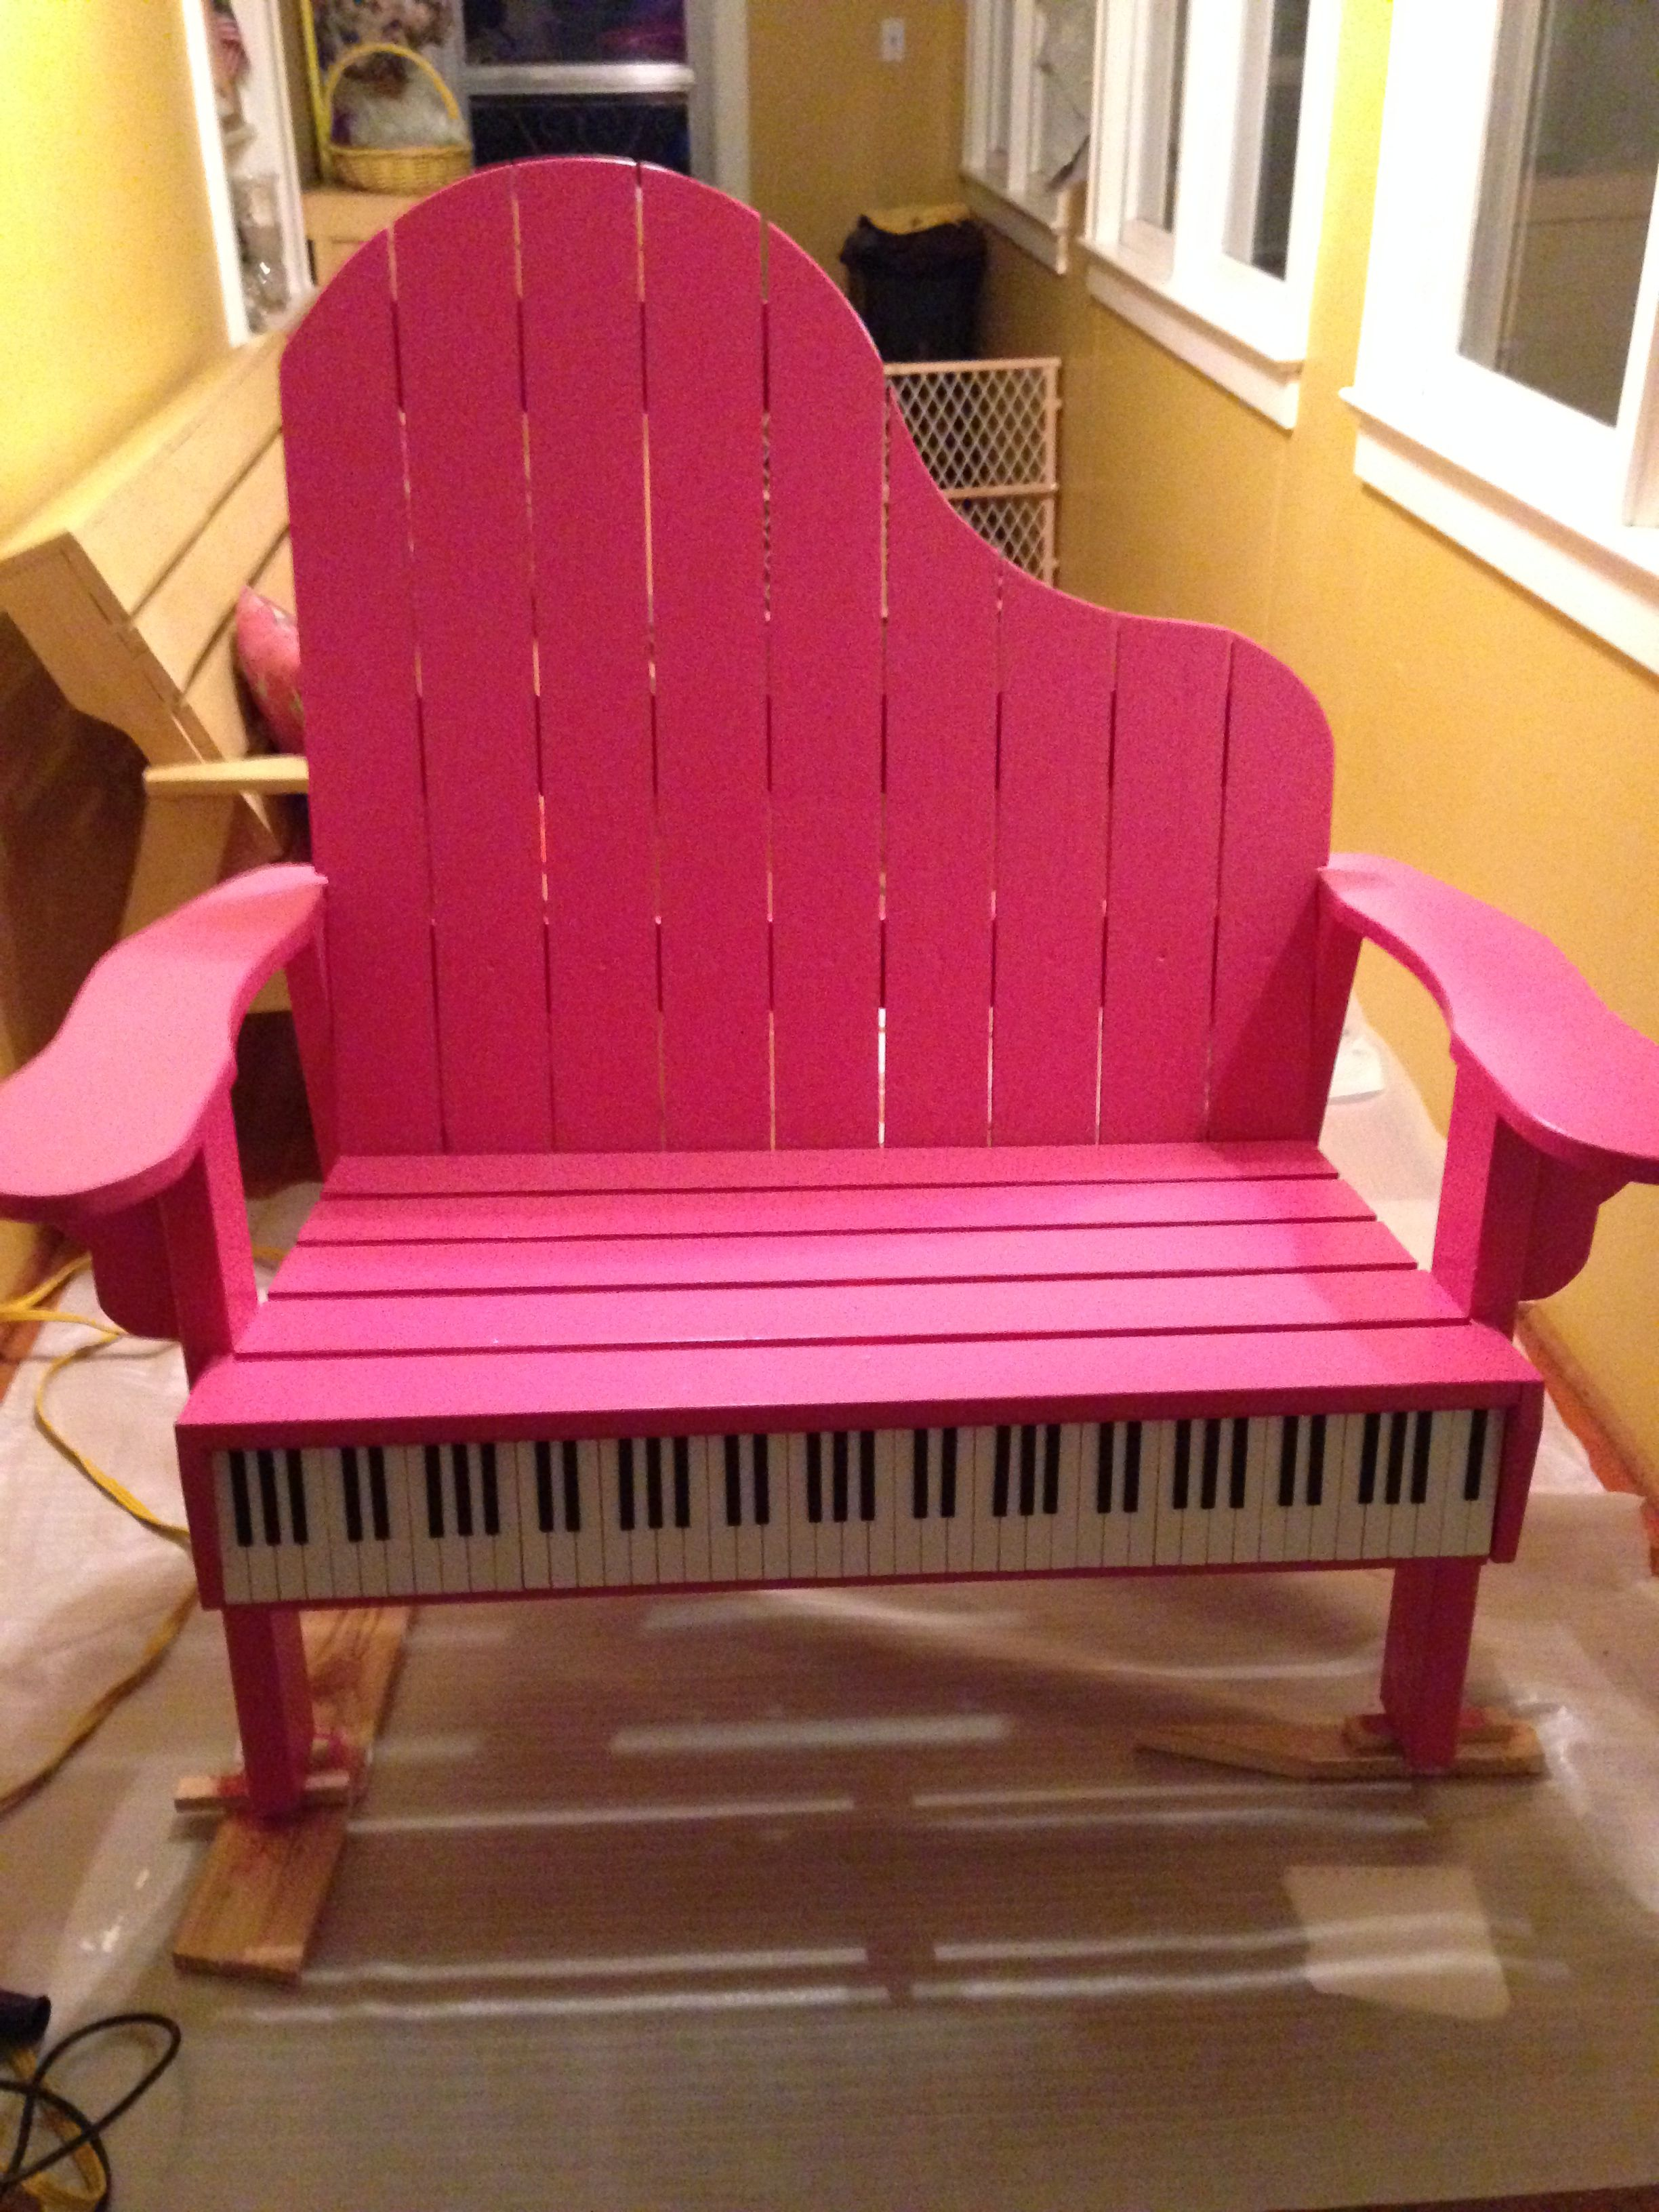 Grand piano shaped bench | ~Music Lover~ | Pinterest | Casas, Musica ...